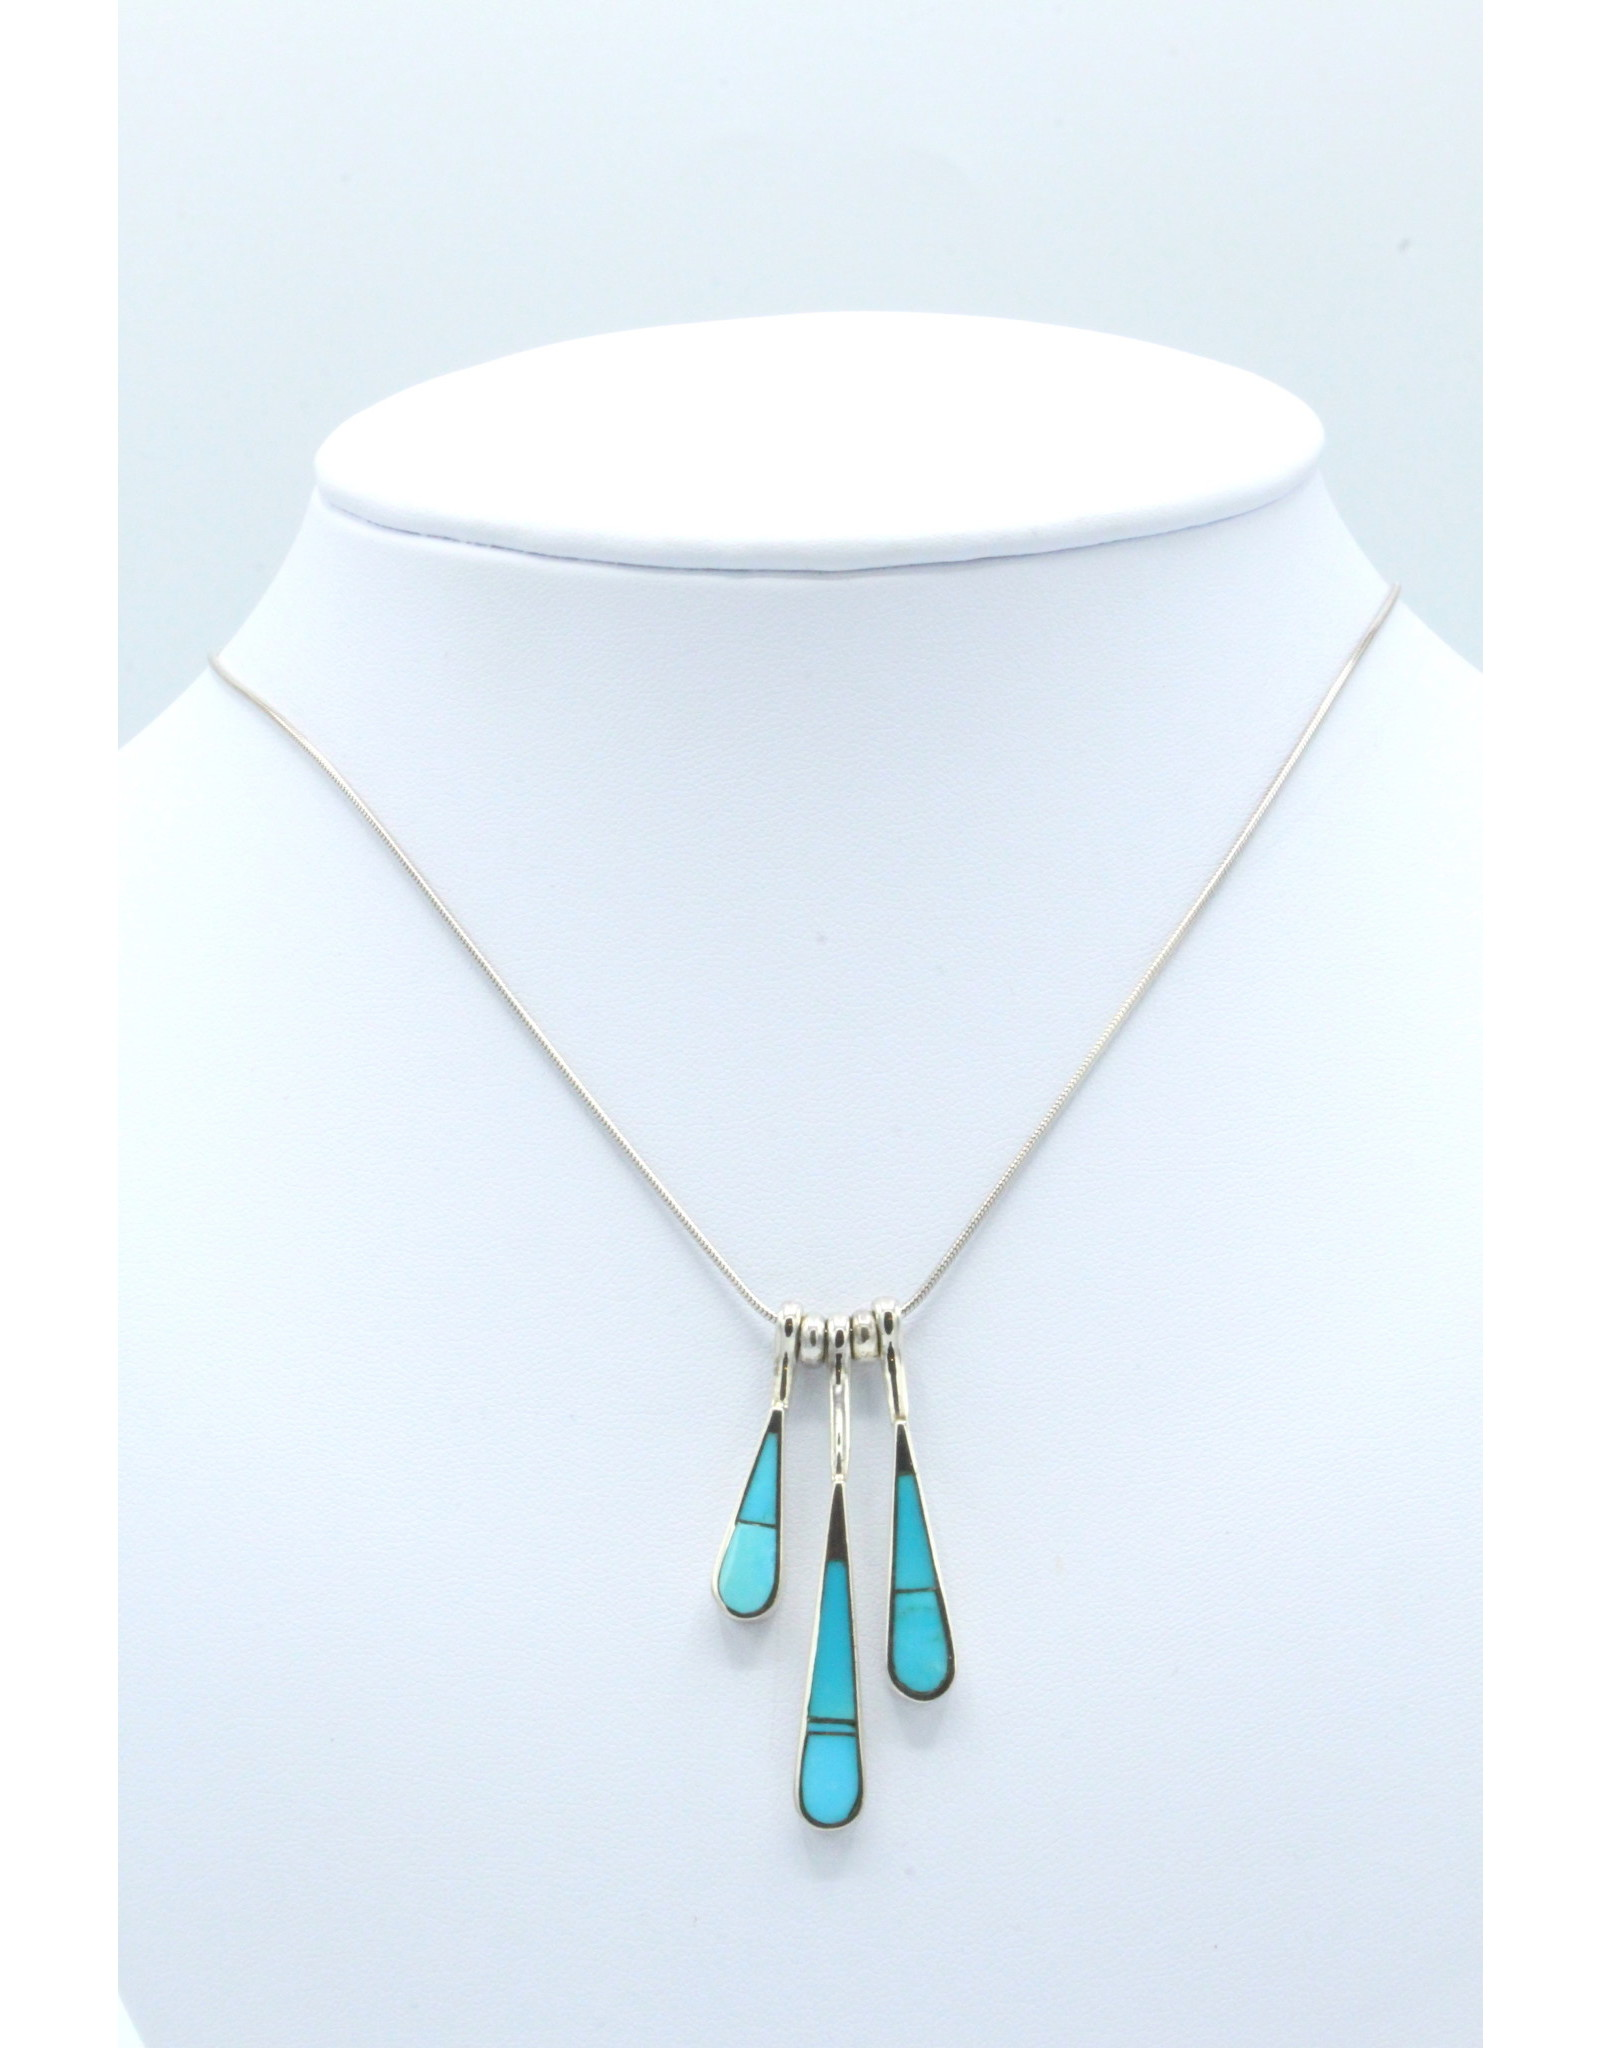 3 Tear Necklace Turquoise - N108-6